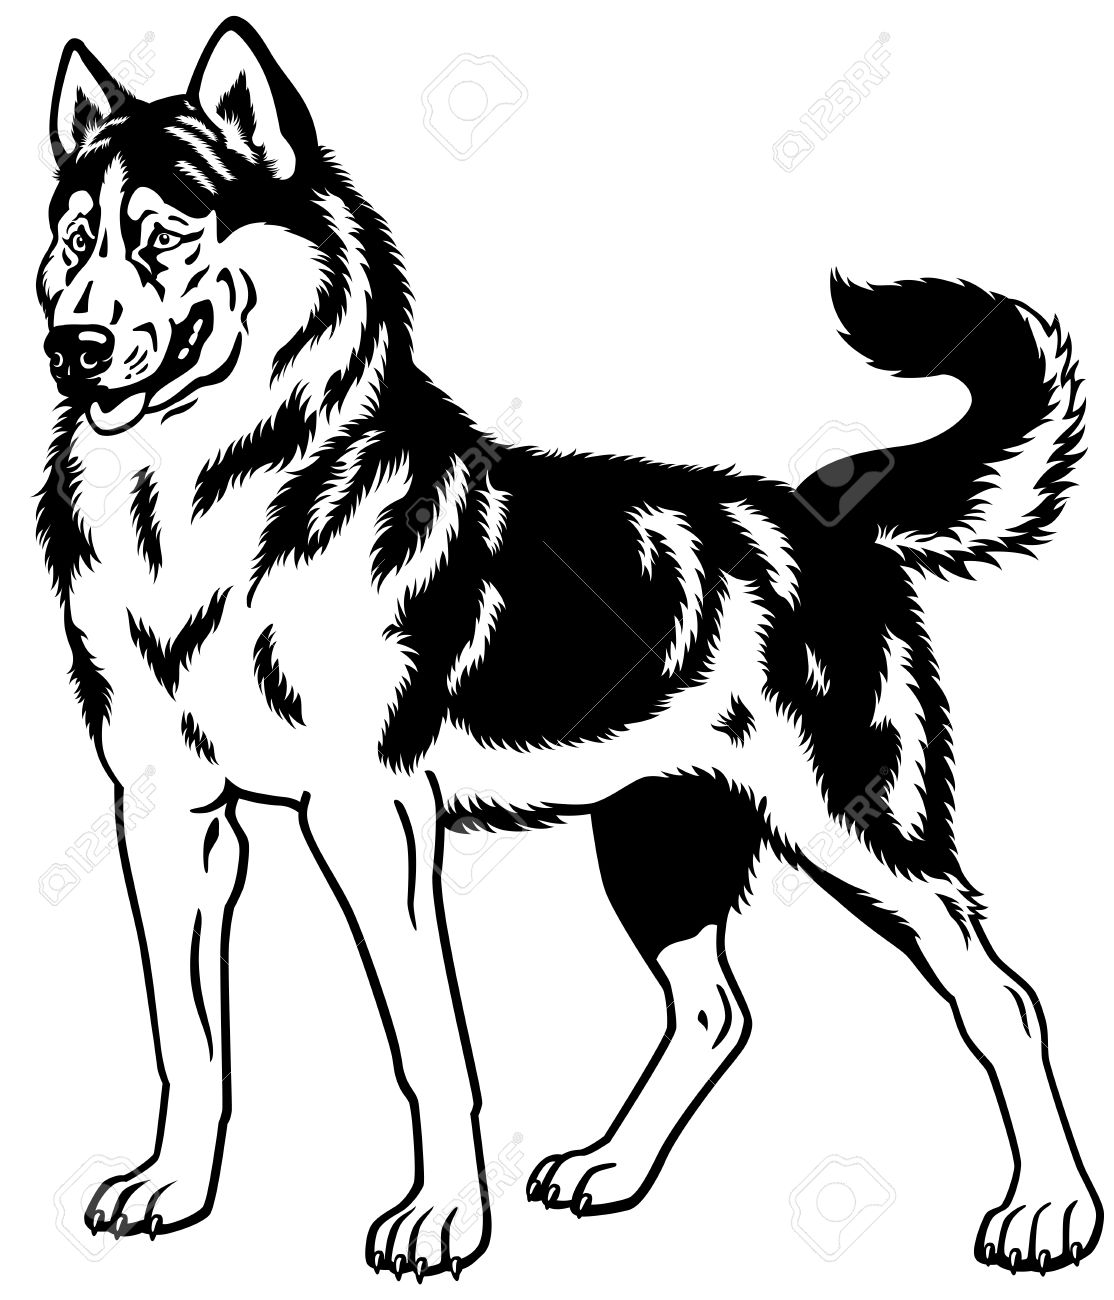 Dorable Cute Husky Para Colorear Bandera - Ideas Para Colorear ...